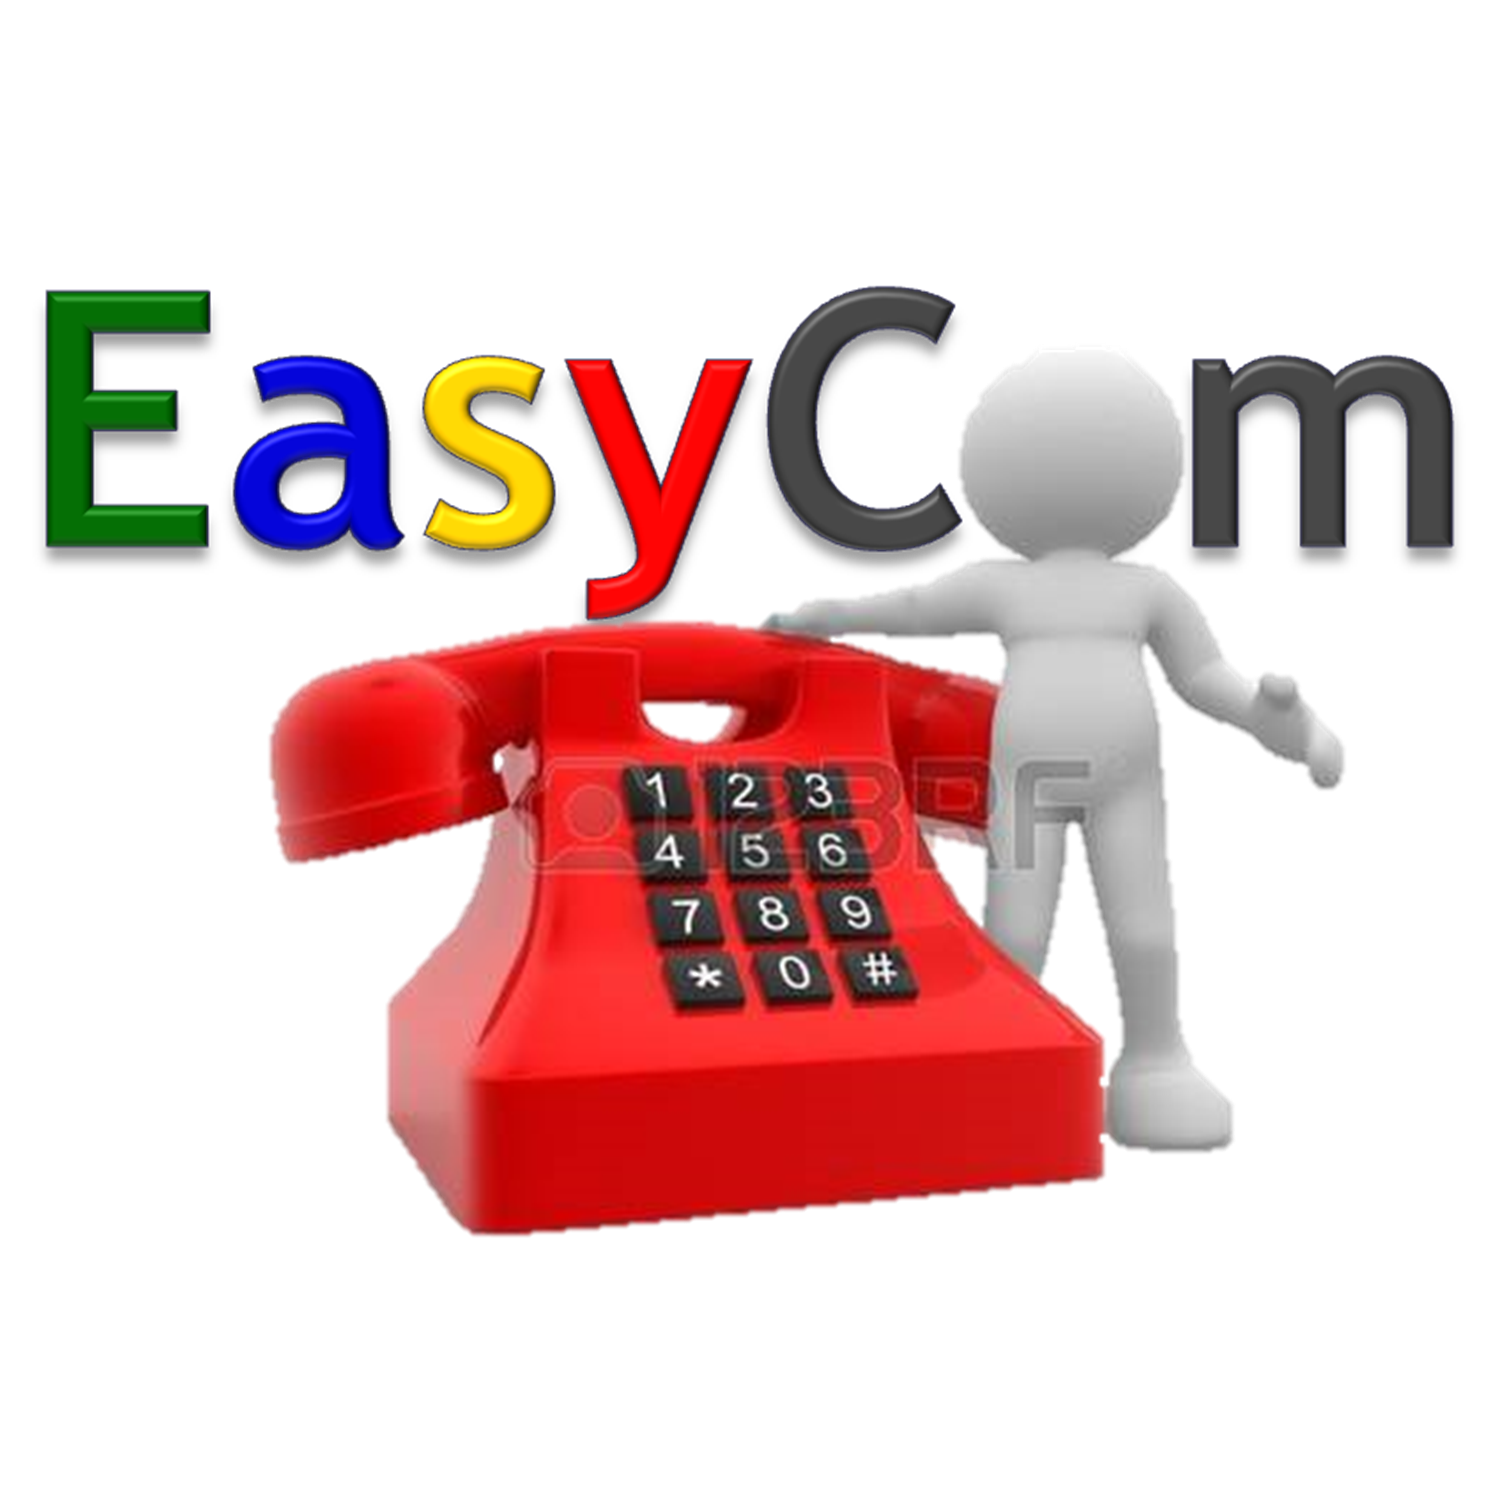 A Use Case for EasyPBX